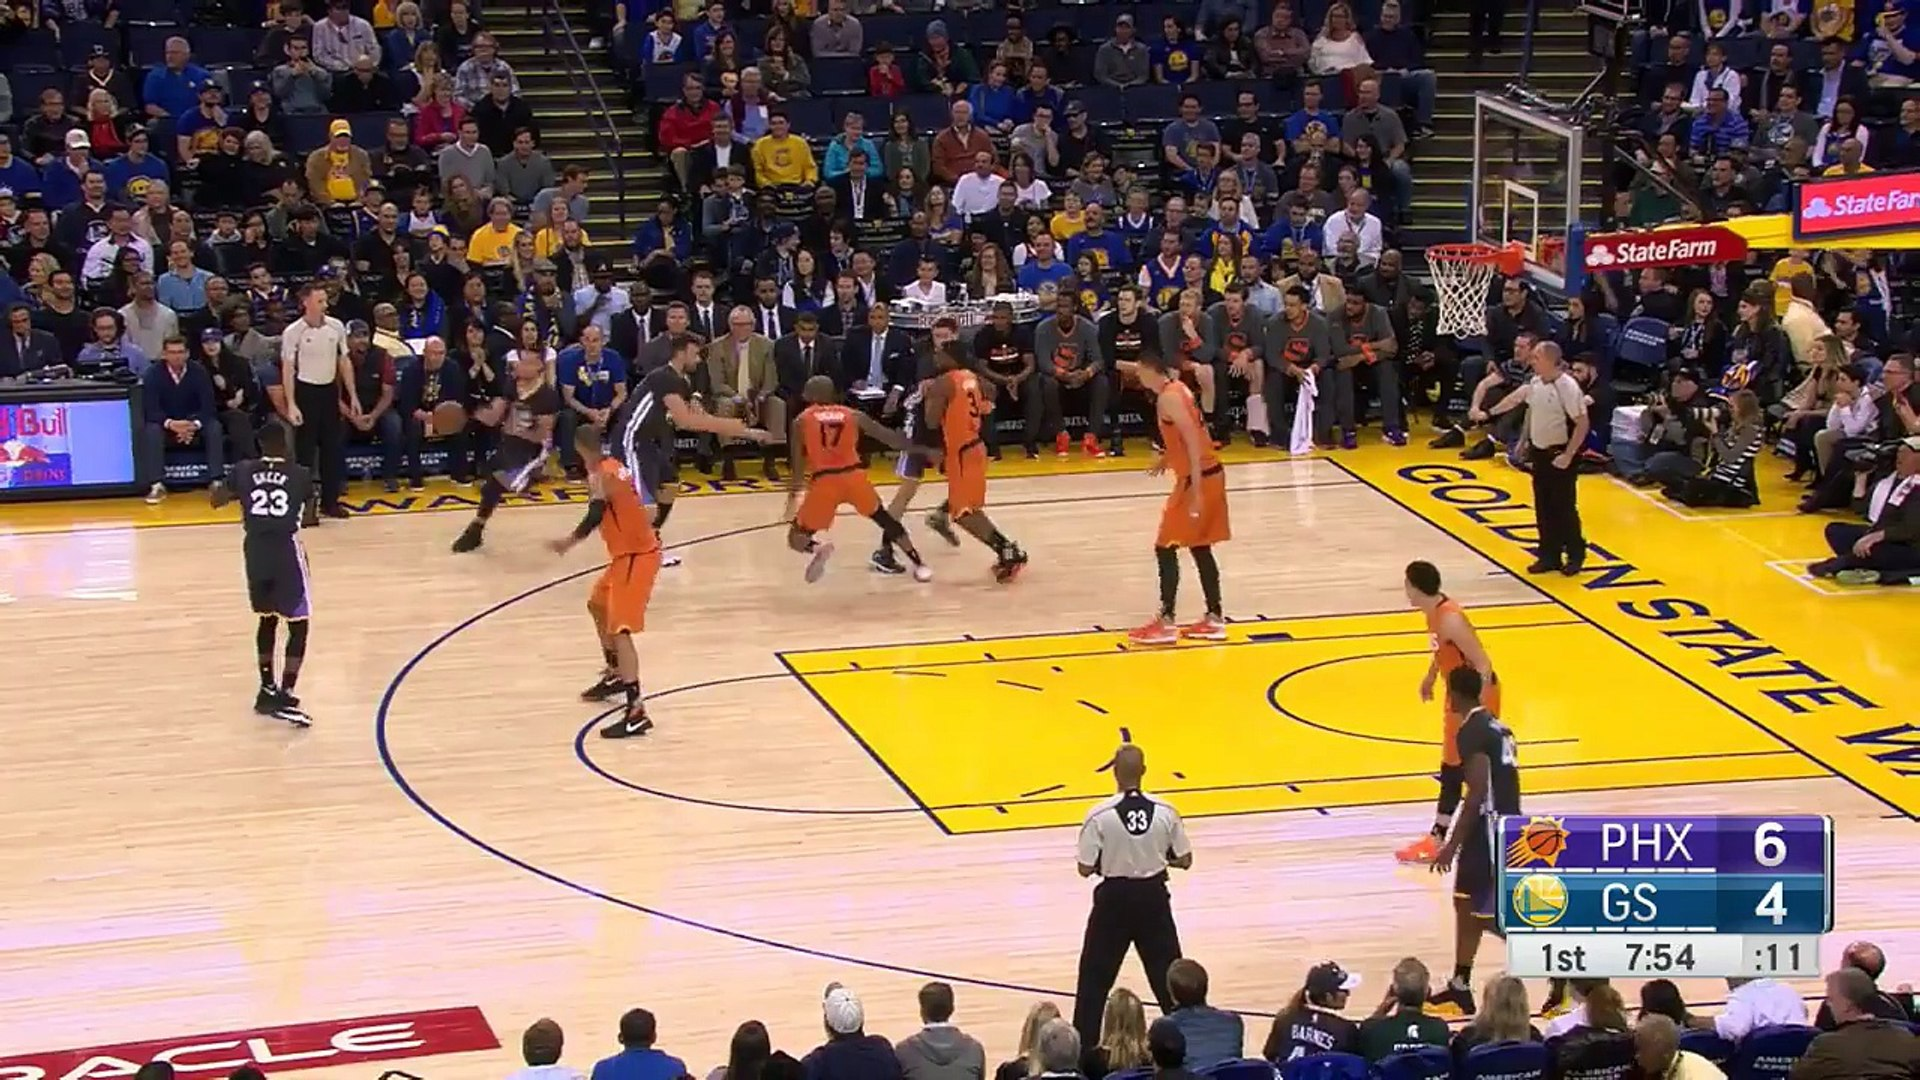 Stephen Curry s Insane 3-Pointers   Suns vs Warriors   March 12, 2016   NBA 2015-16 Season